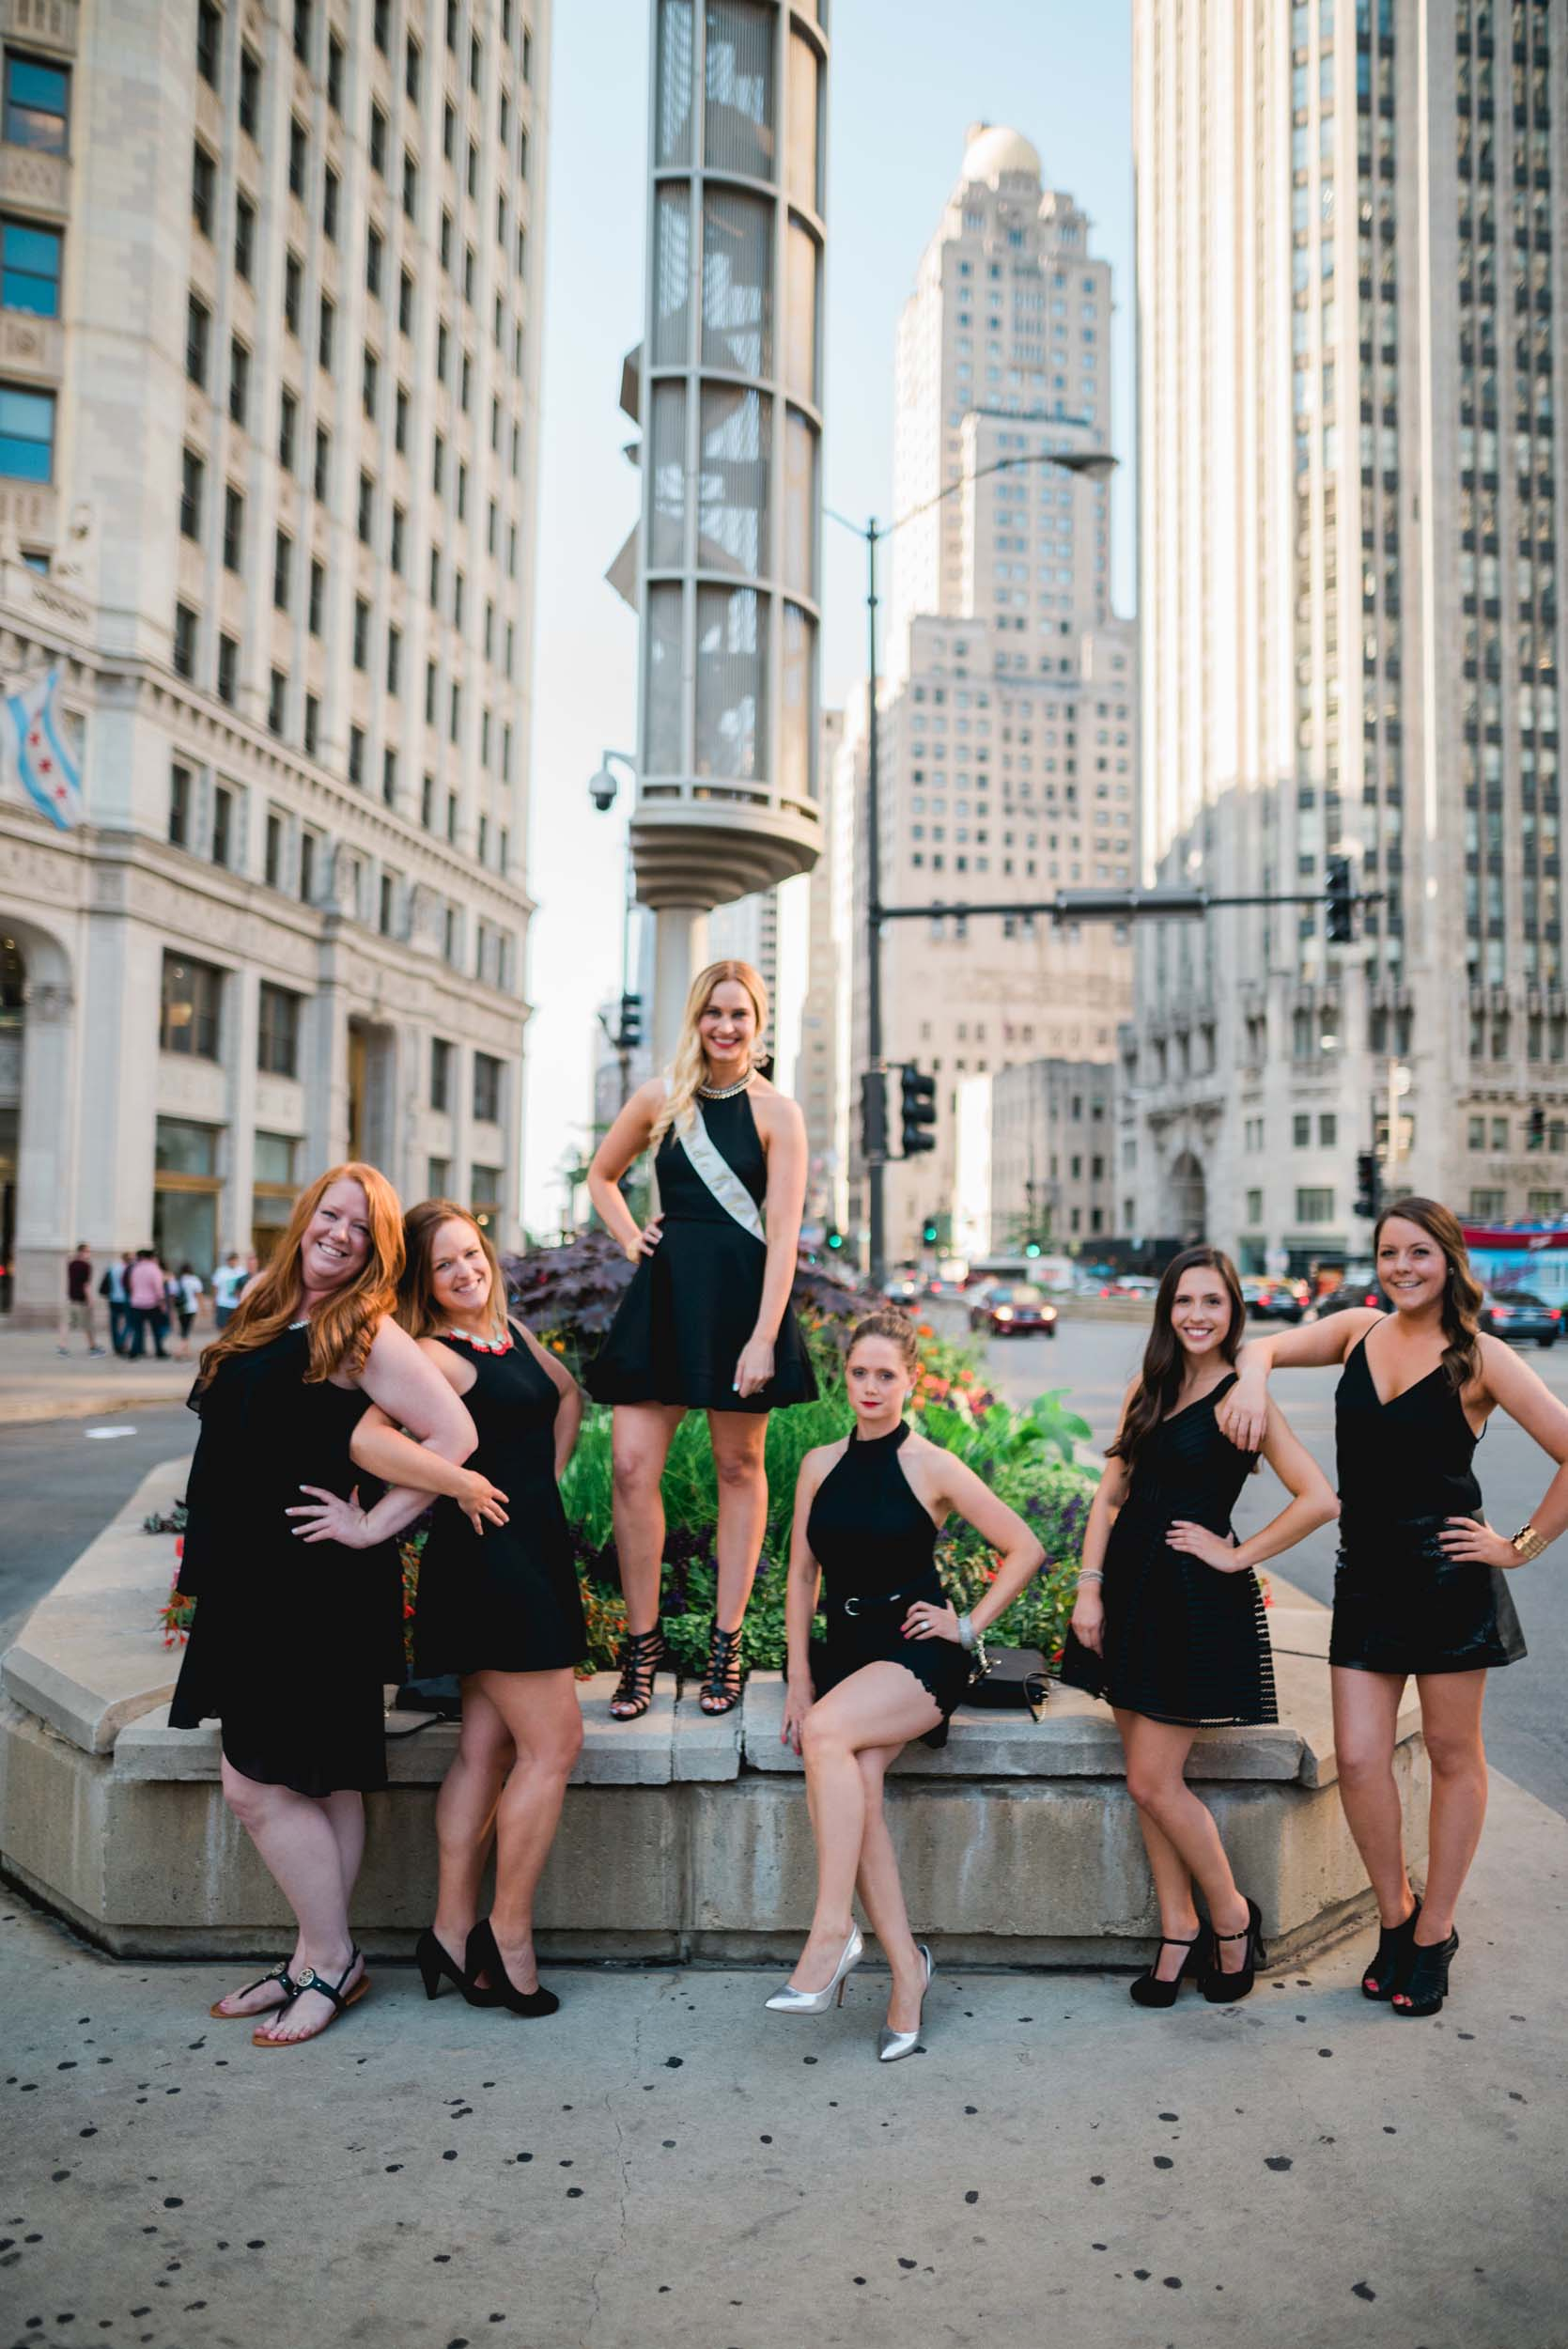 Six female friends on a bachelorette trip standing in a street meridian area together in Chicago, USA